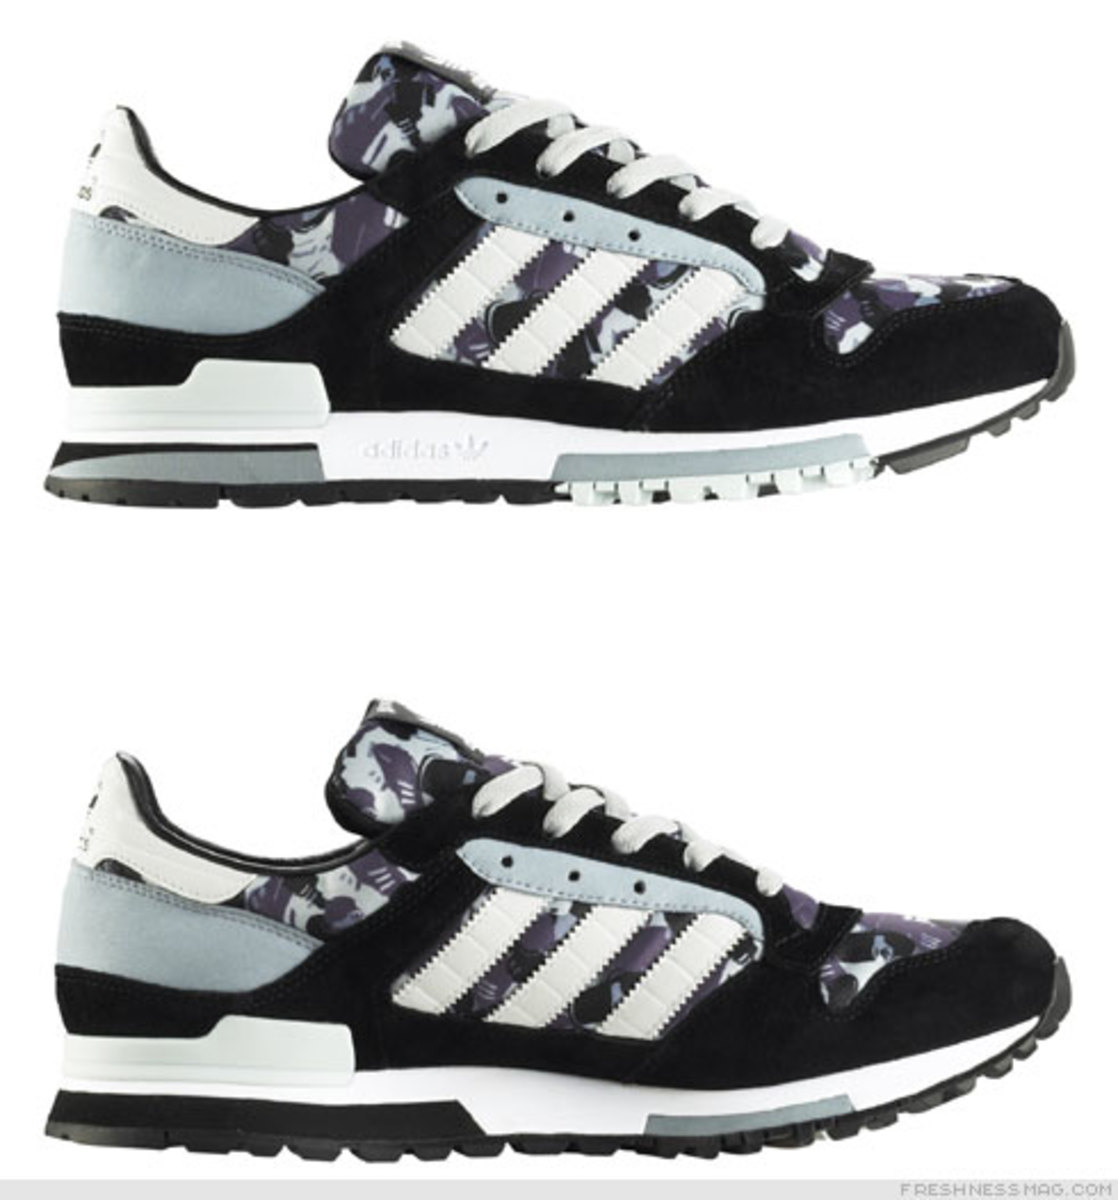 Freshness Feature: Adidas ZX Family - Camo Pack - 9